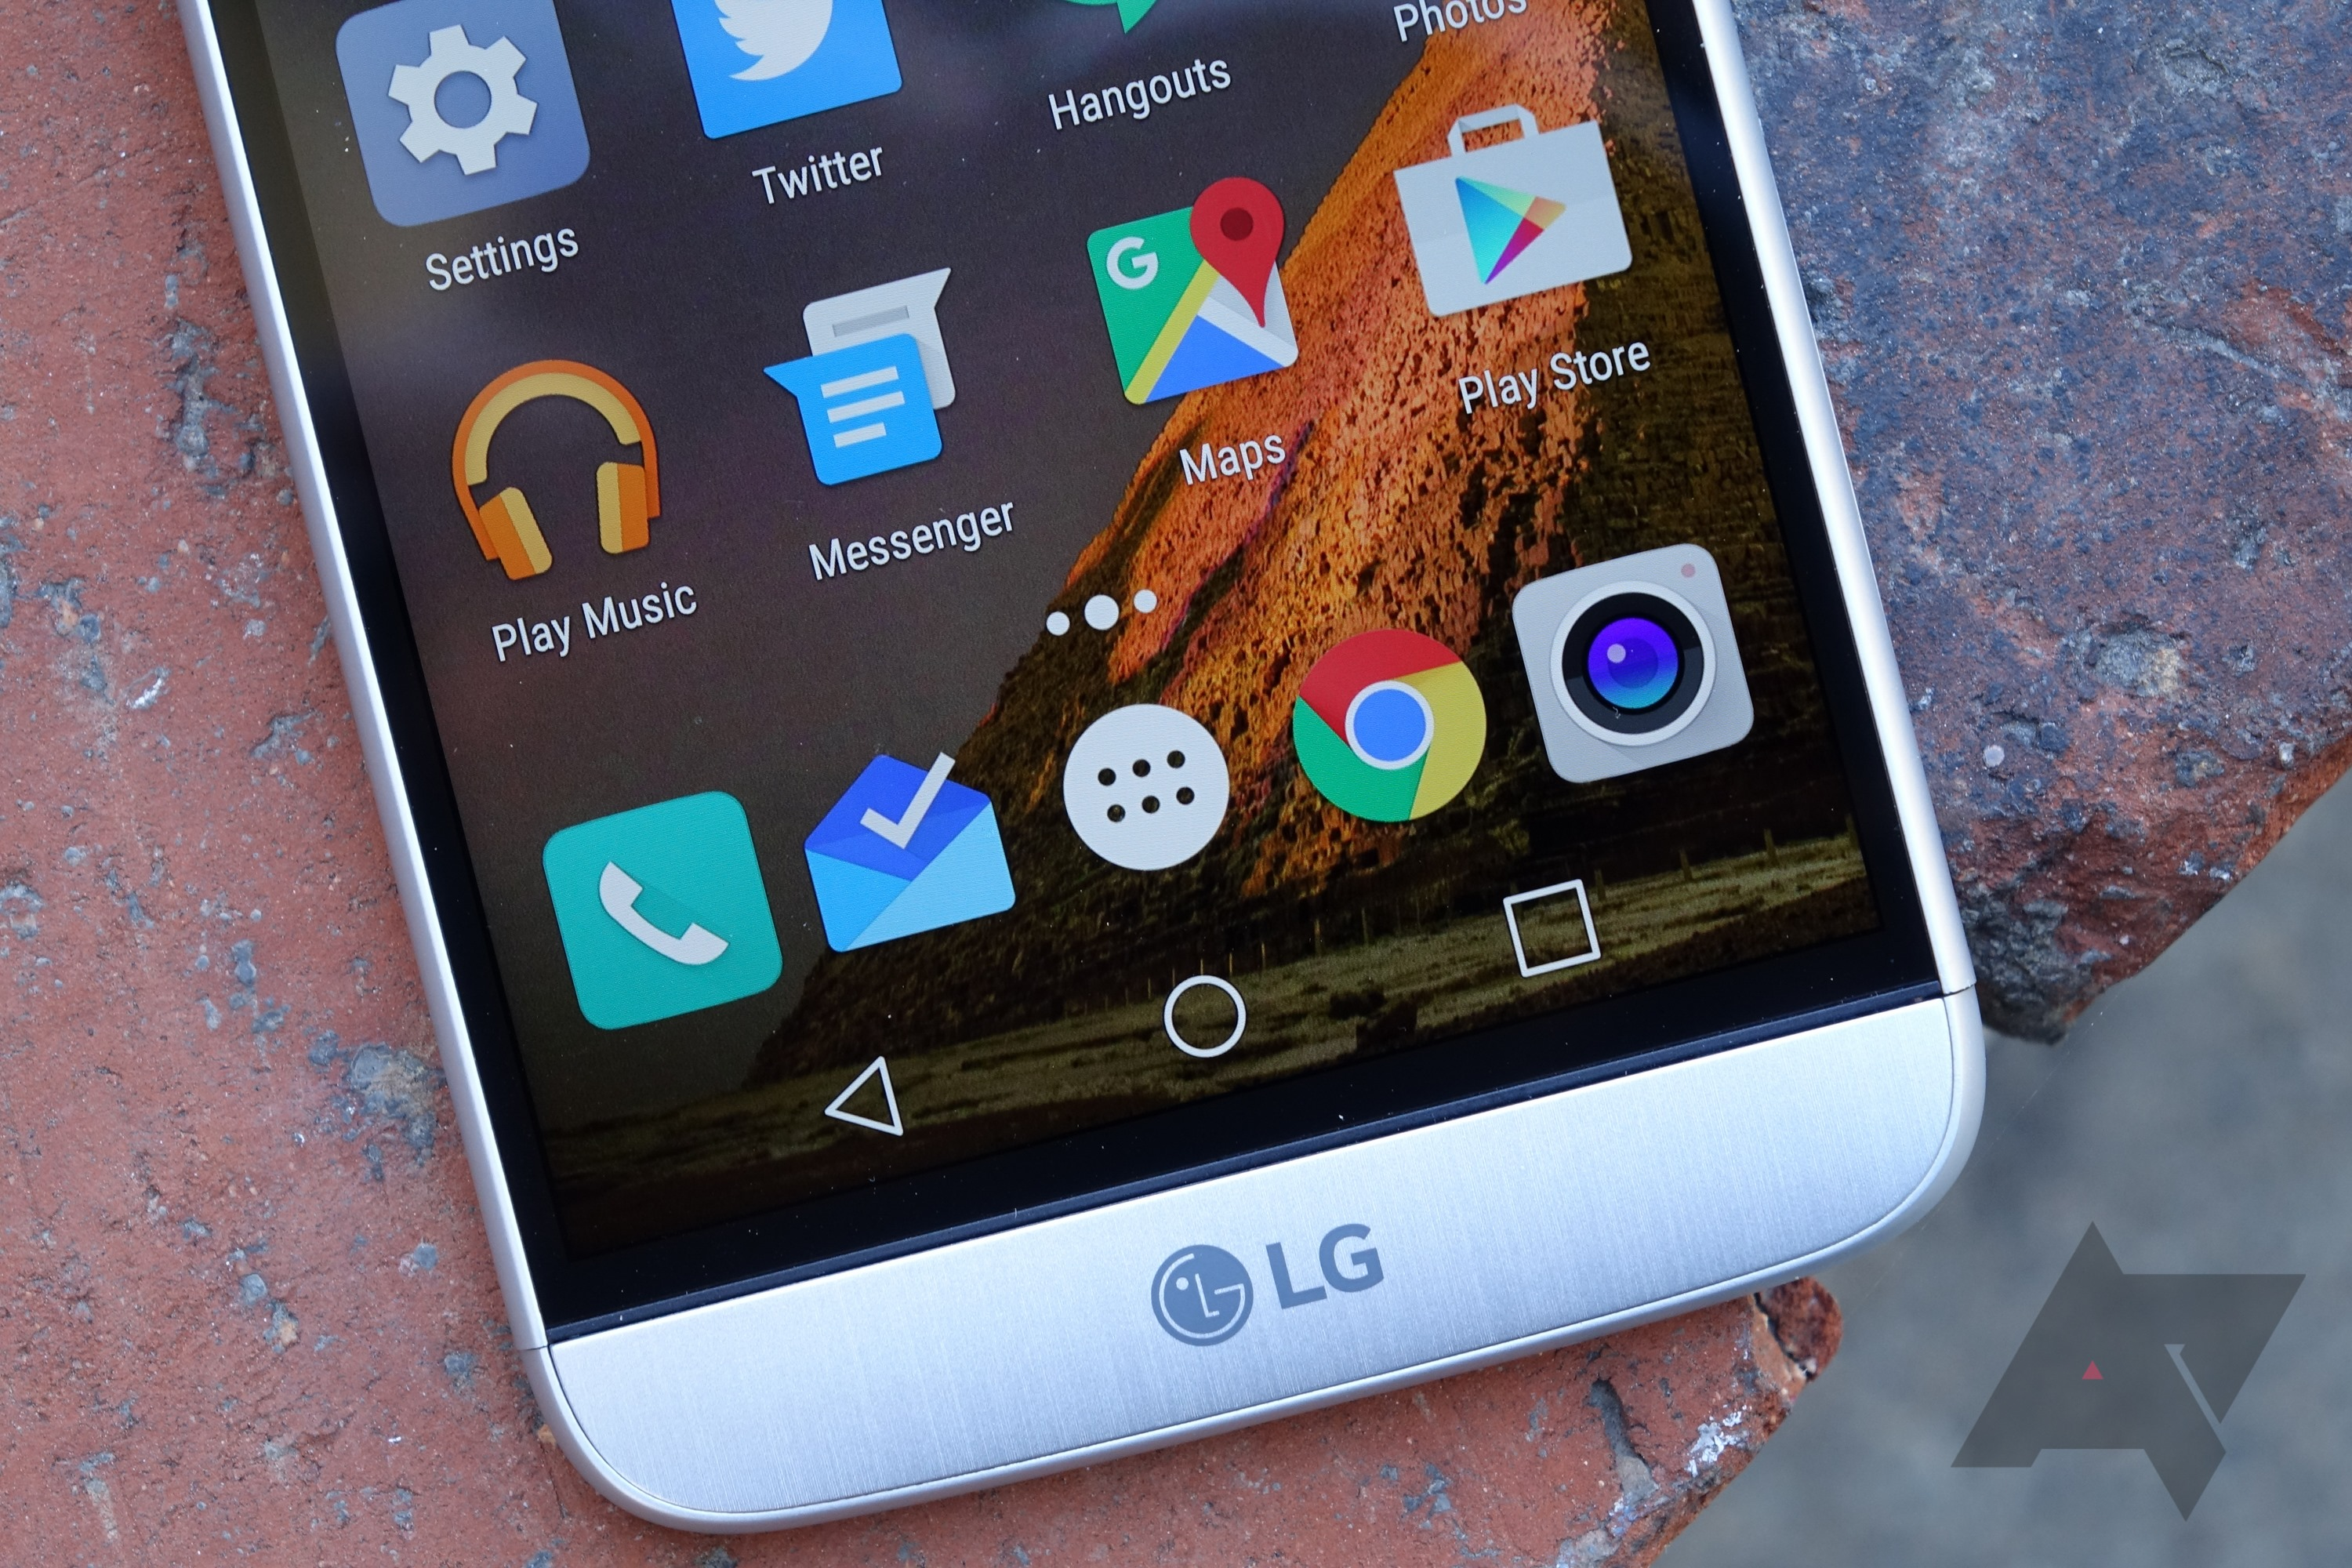 LG adds US unlocked LG G5 (RS988) to bootloader unlock tool